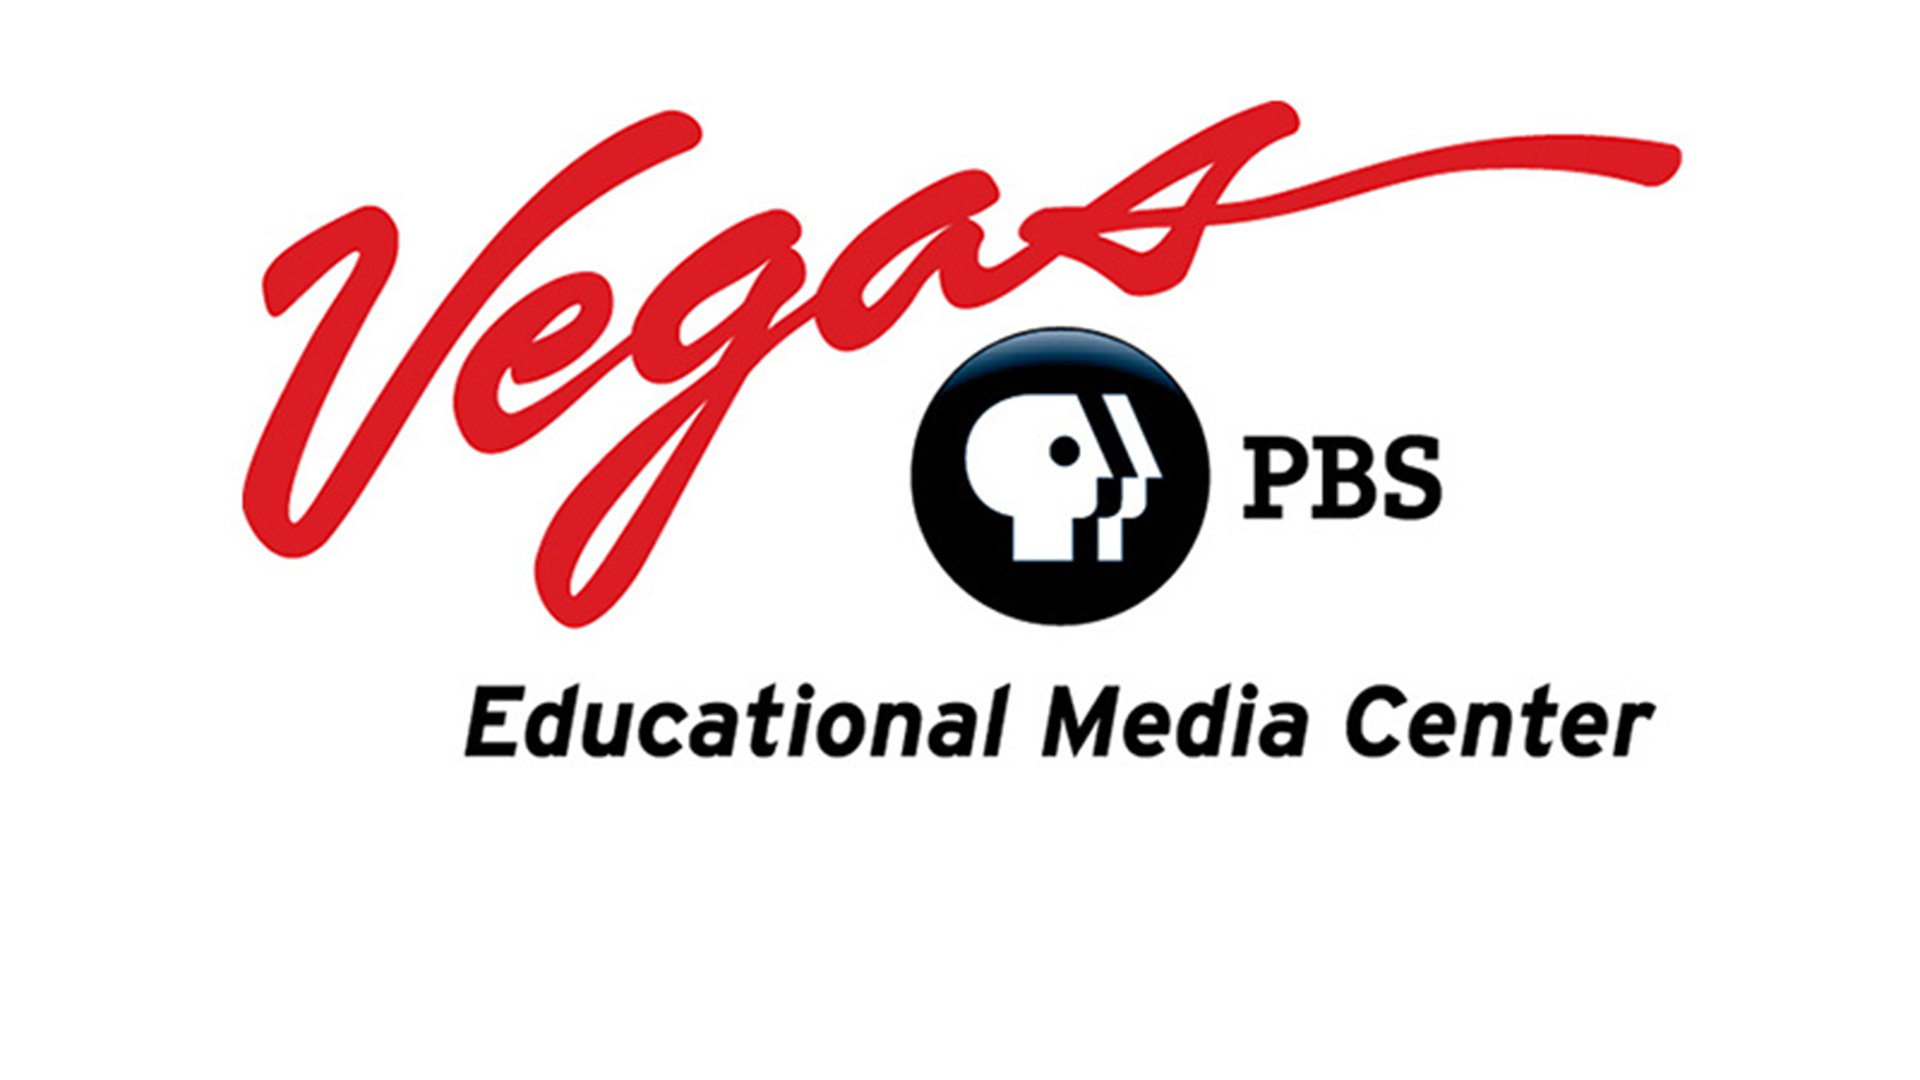 Vegas PBS Educational Media Center